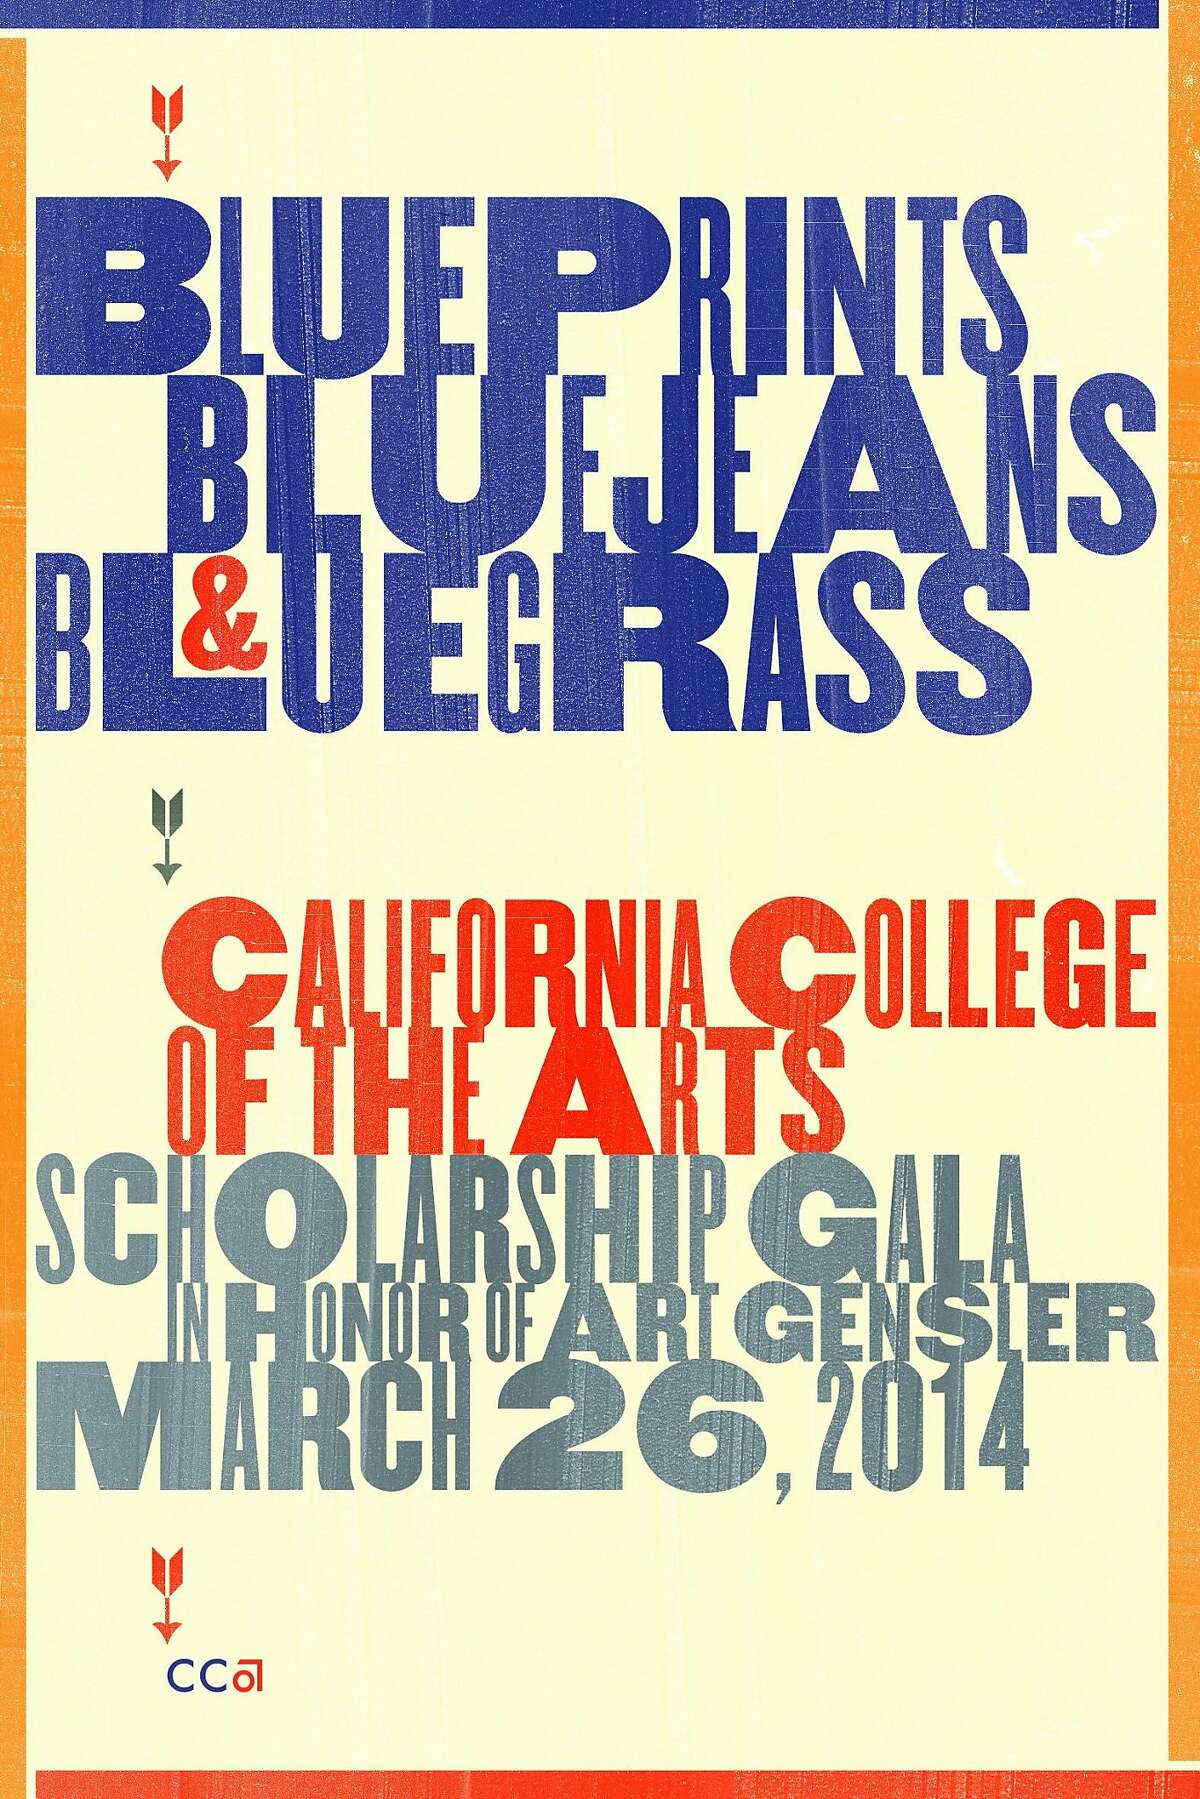 Blue Prints, Blue Jeans & Bluegrass on March 26 will celebrate the life and work of distinguished architecture and design leader Art Gensler. Net proceeds from the Gala will go to scholarships for talented and deserving students at California College of the Arts.